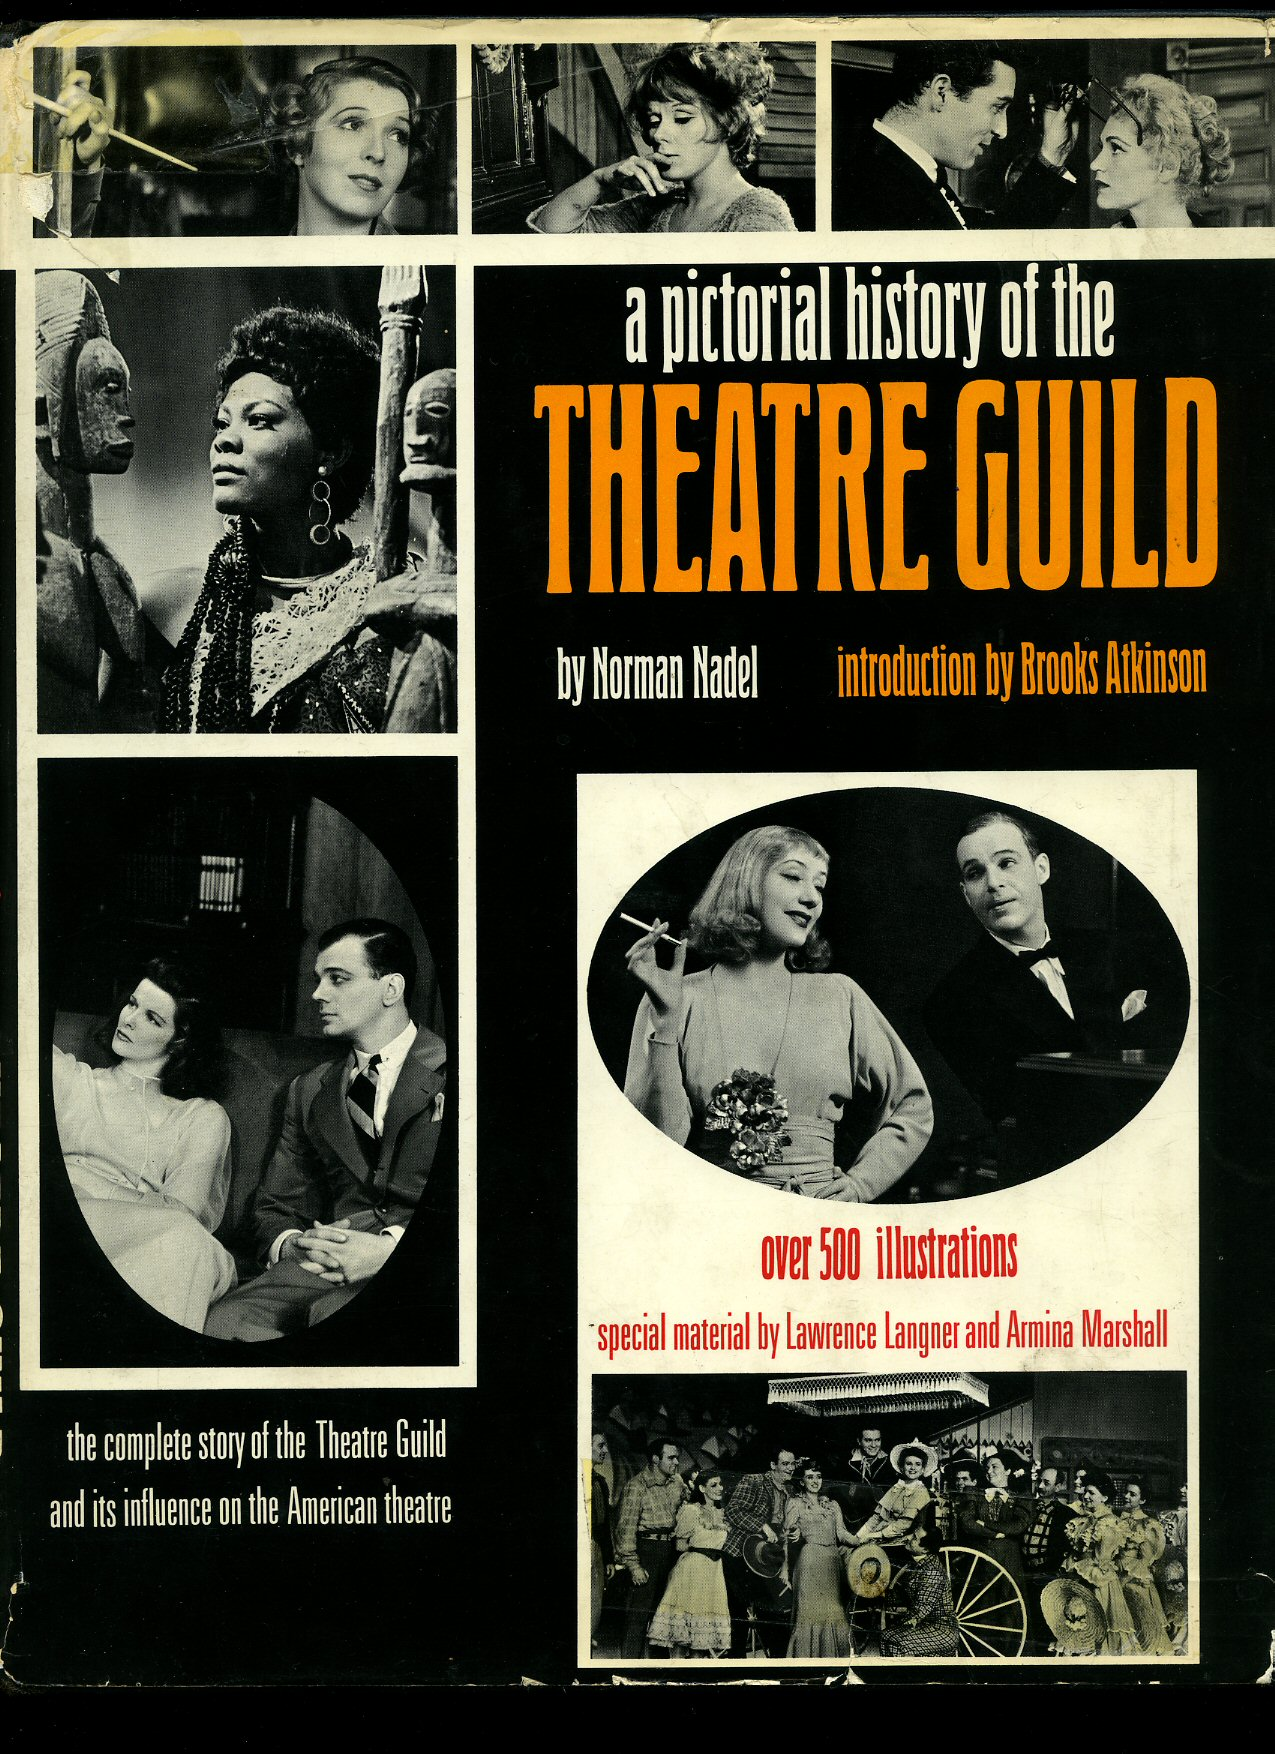 NADEL, NORMAN [INTRODUCTION BY BROOKS ATKINSON] OTHER MATERIAL BY LAWRENCE LANGNER AND ARMINA MARSHALL - A Pictorial History of the Theatre Guild and its Influence on the American Theatre [Signed]